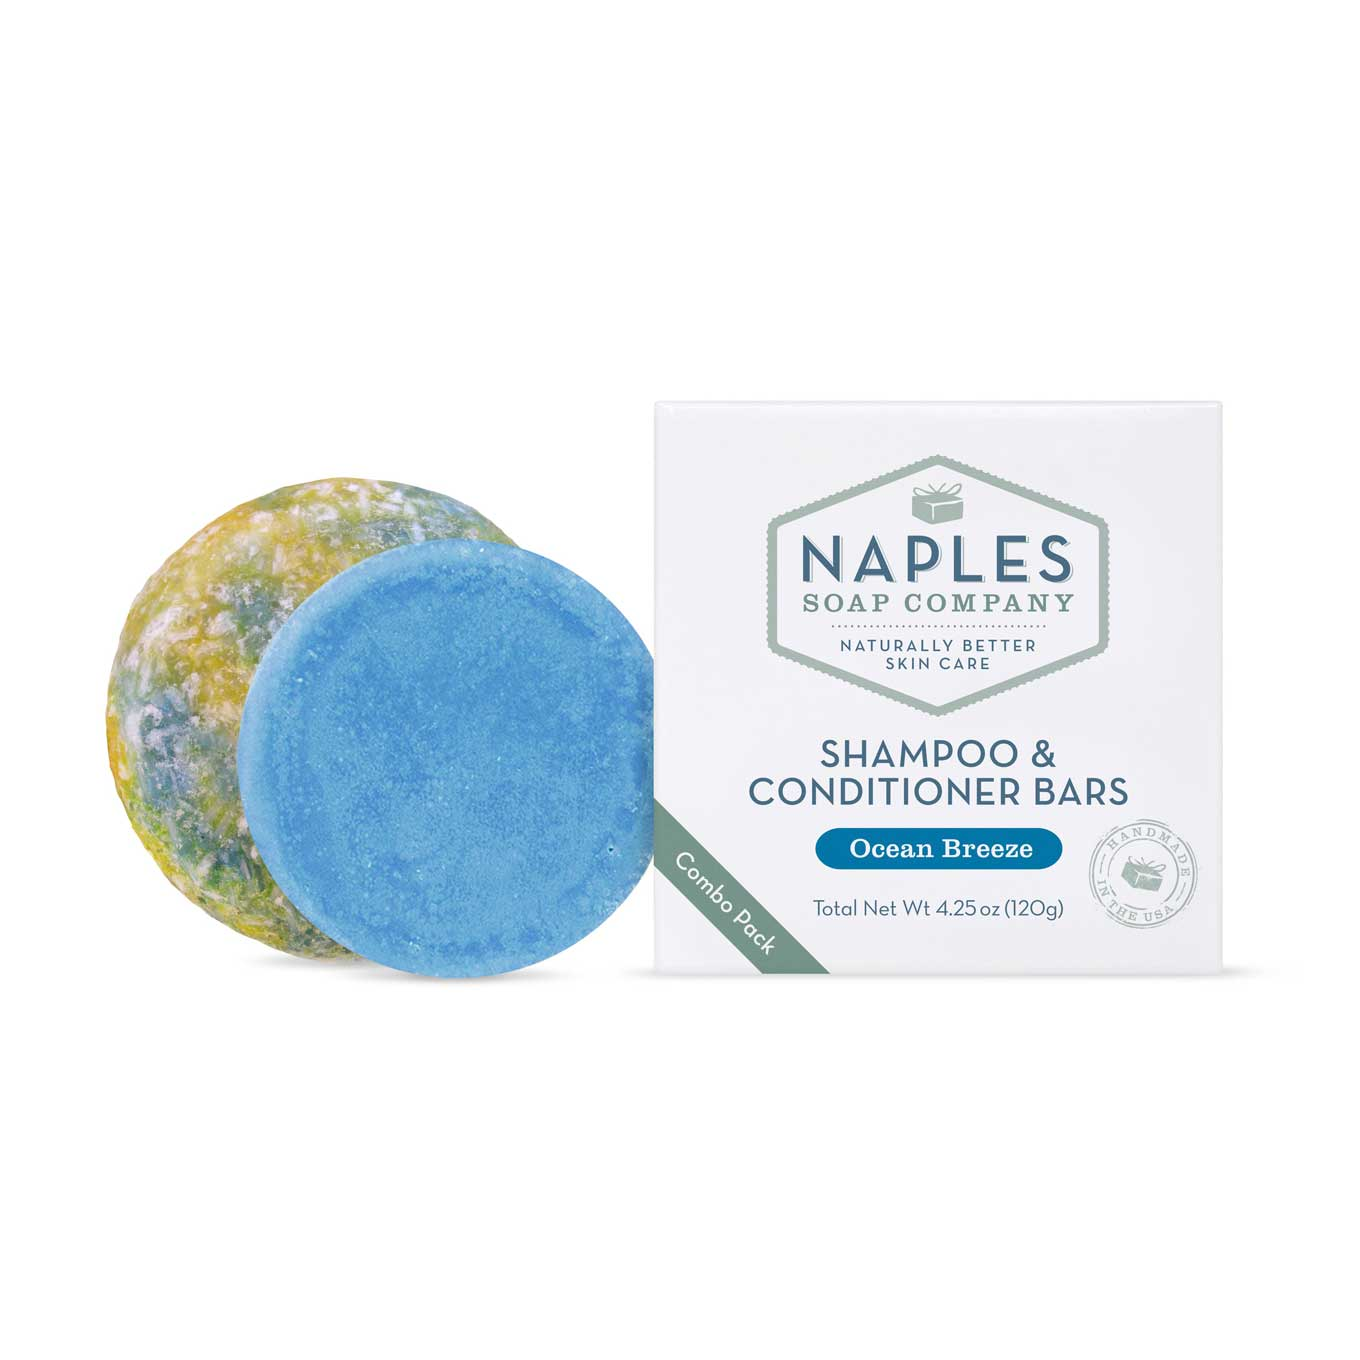 Ocean Breeze Shampoo & Conditioner Bars by Naples Soap Company